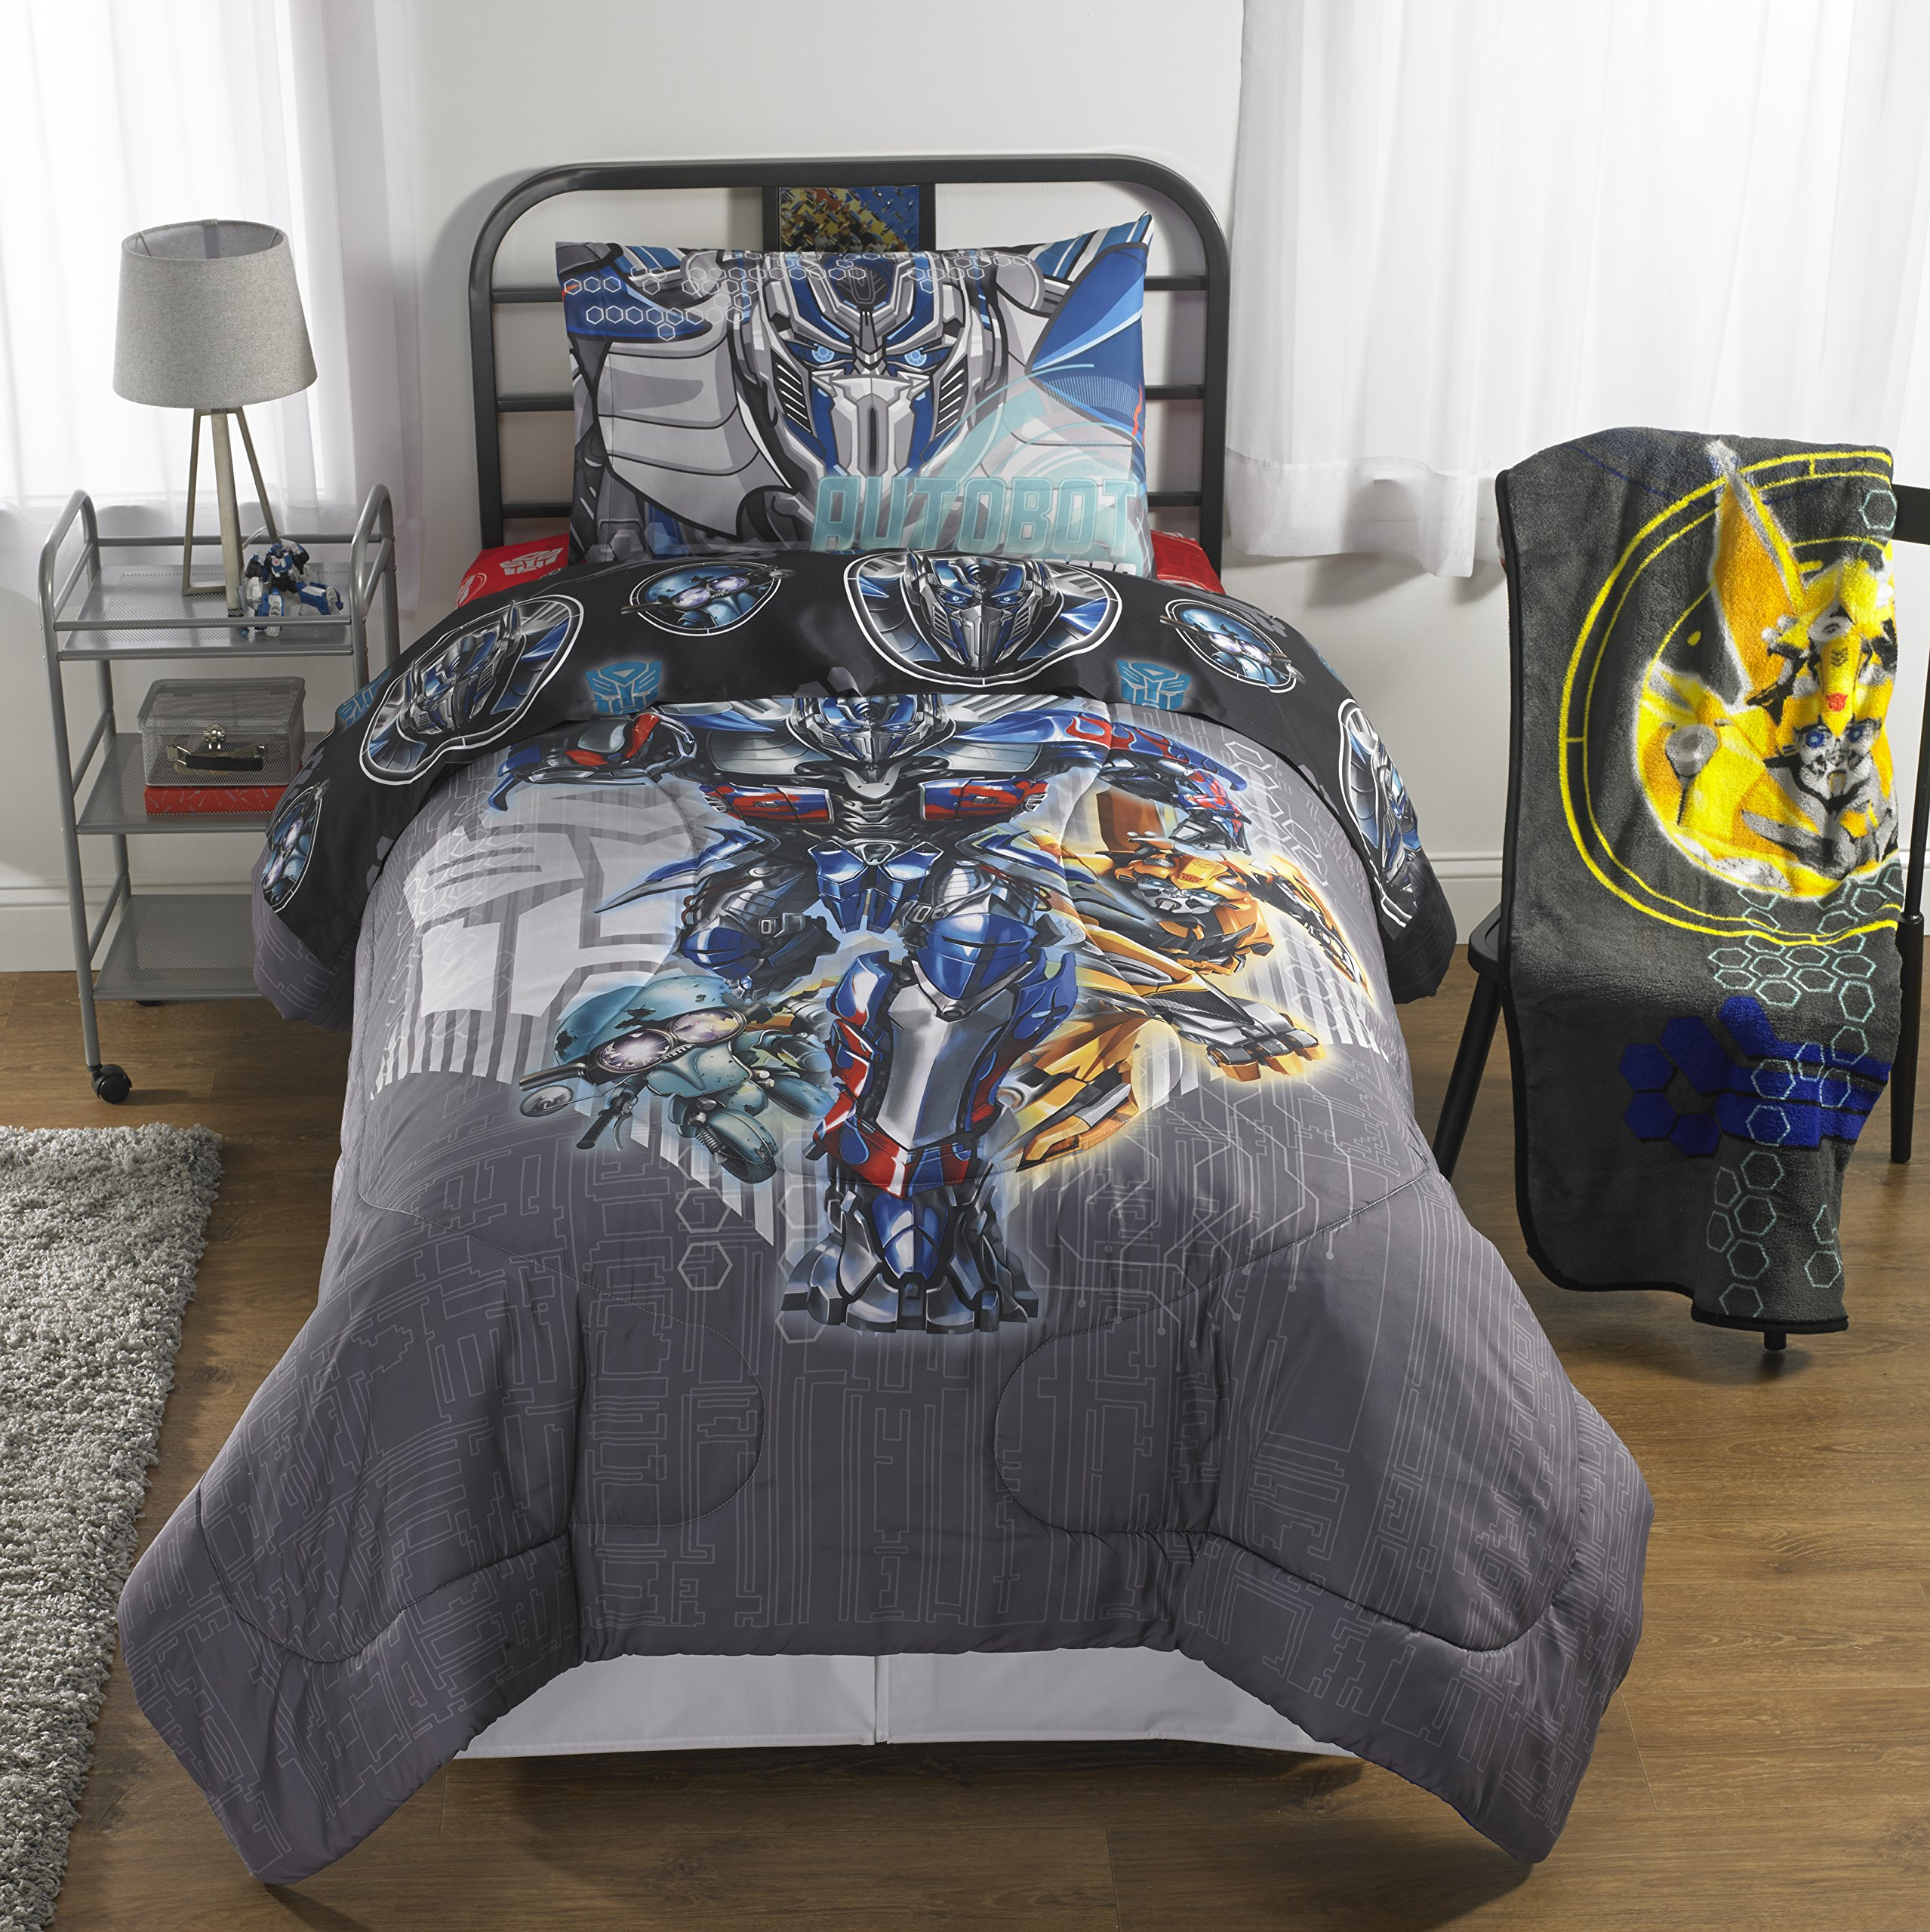 Transformers 5 (2017) 6-Piece Full Bedding Collection with Comforter, Sheet Set and Activity Book (The Last Knight)